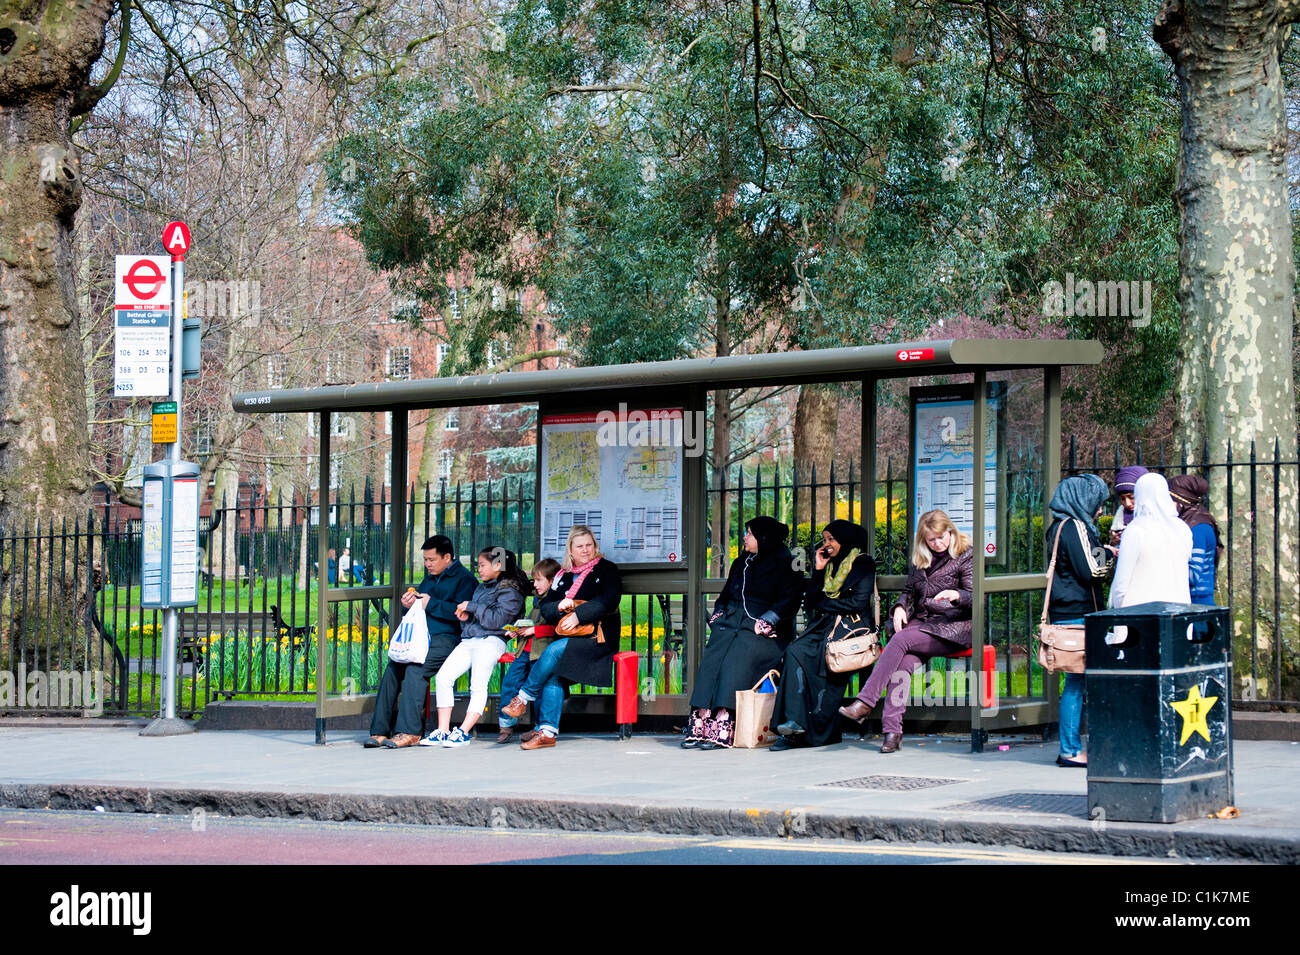 Group of people waiting at a Bus Shelter in Bethnal Green, London. - Stock Image